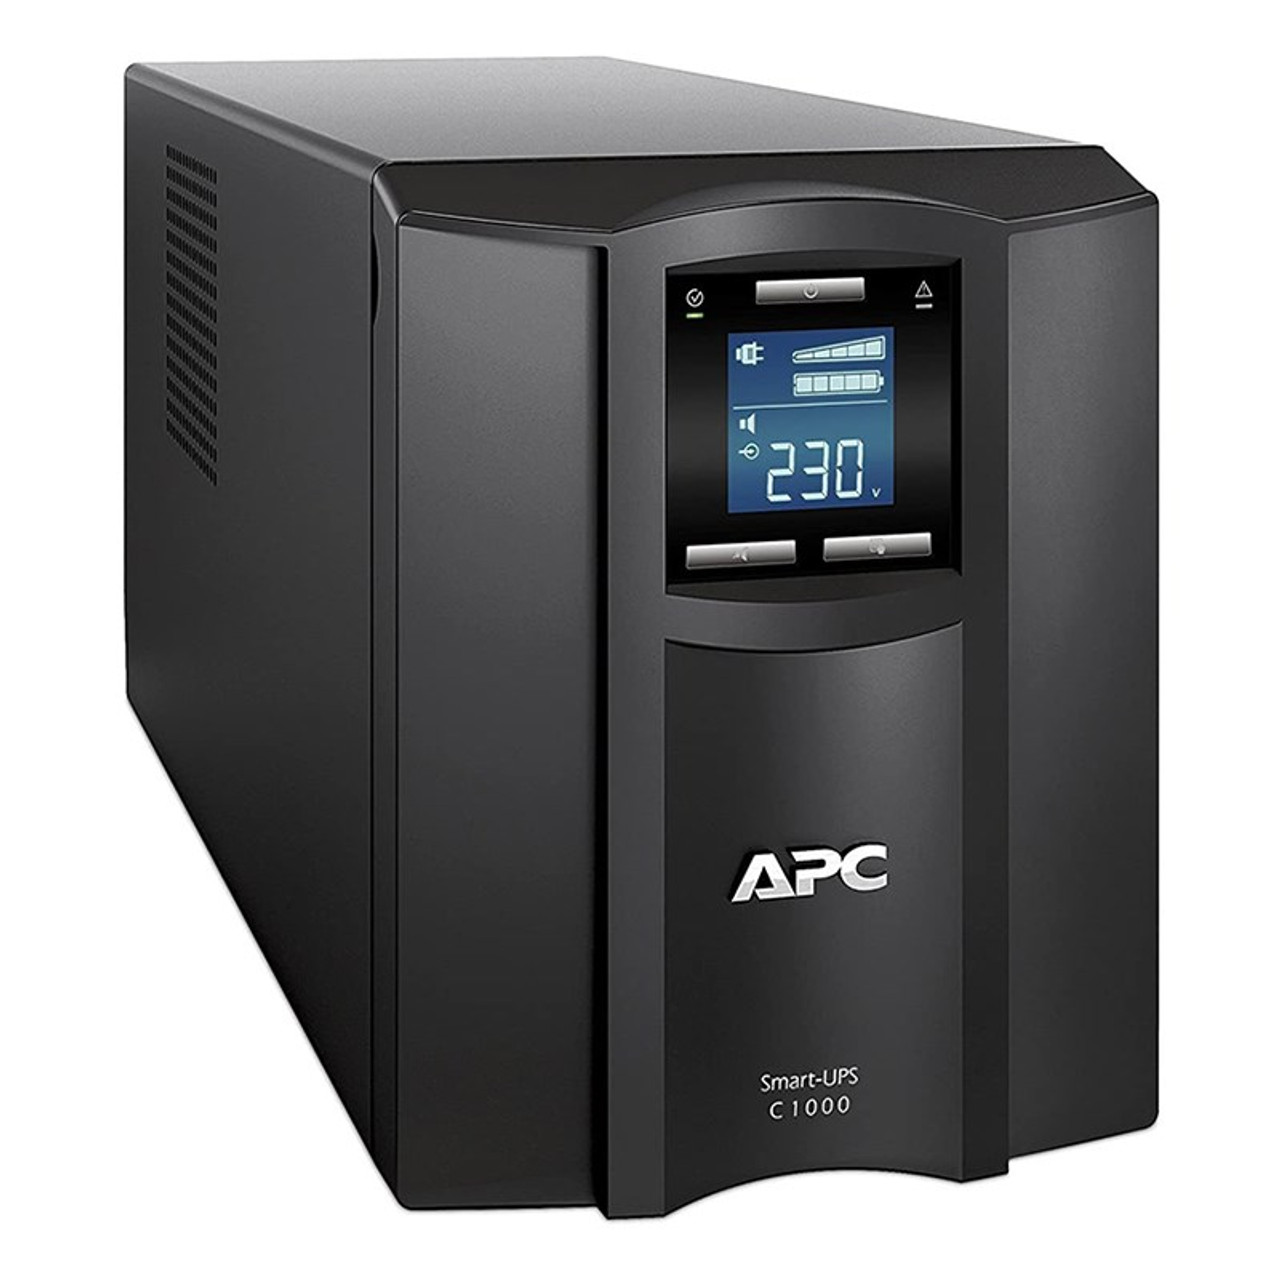 Image for APC SMC1000IC Smart-UPS C 1000VA/600W Sinewave UPS with SmartConnect CX Computer Superstore